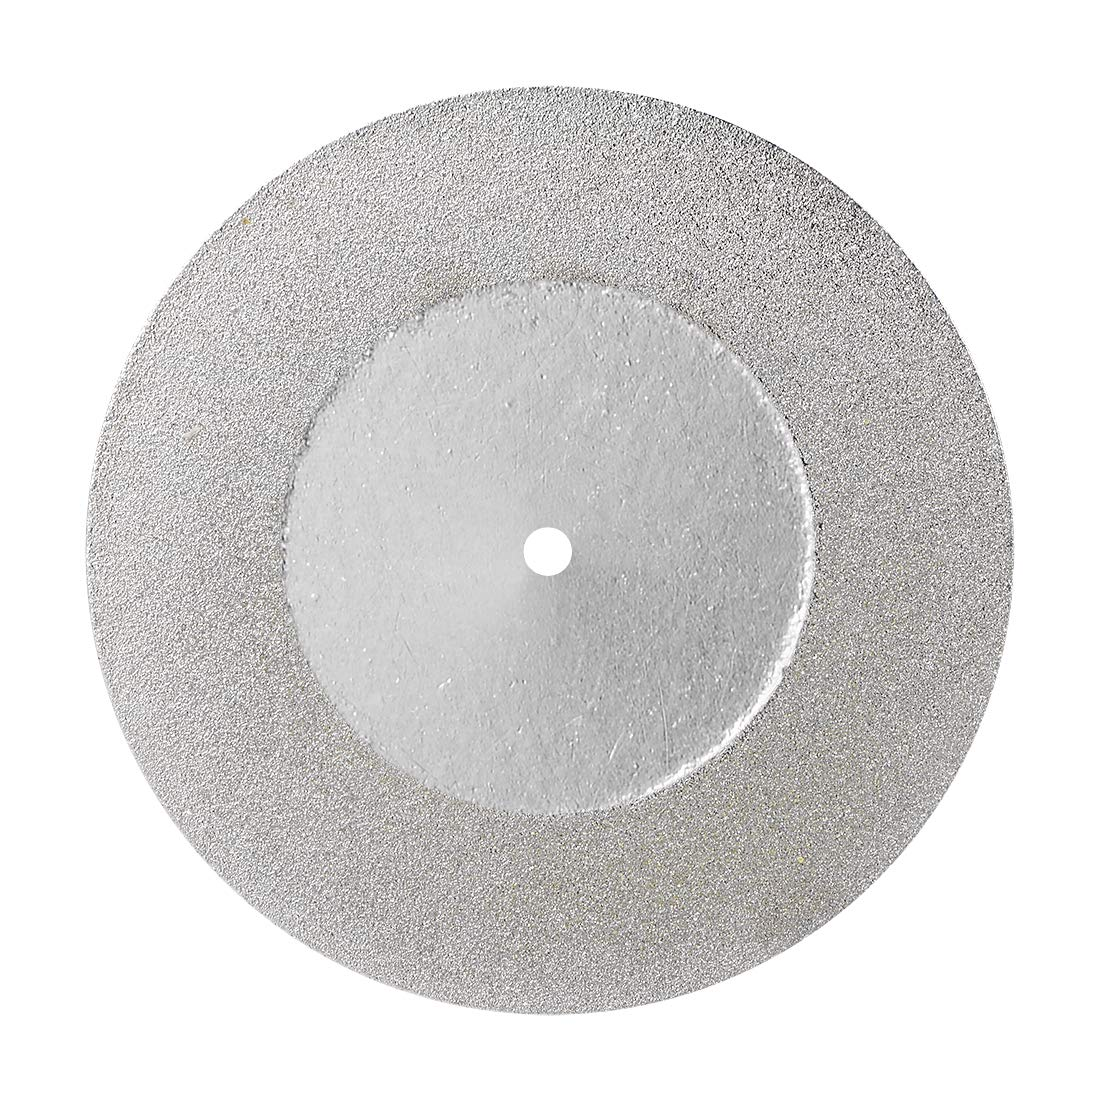 uxcell Cut-Off Wheels Diamond Coated Cutting Discs for Rotary Tools 60mm